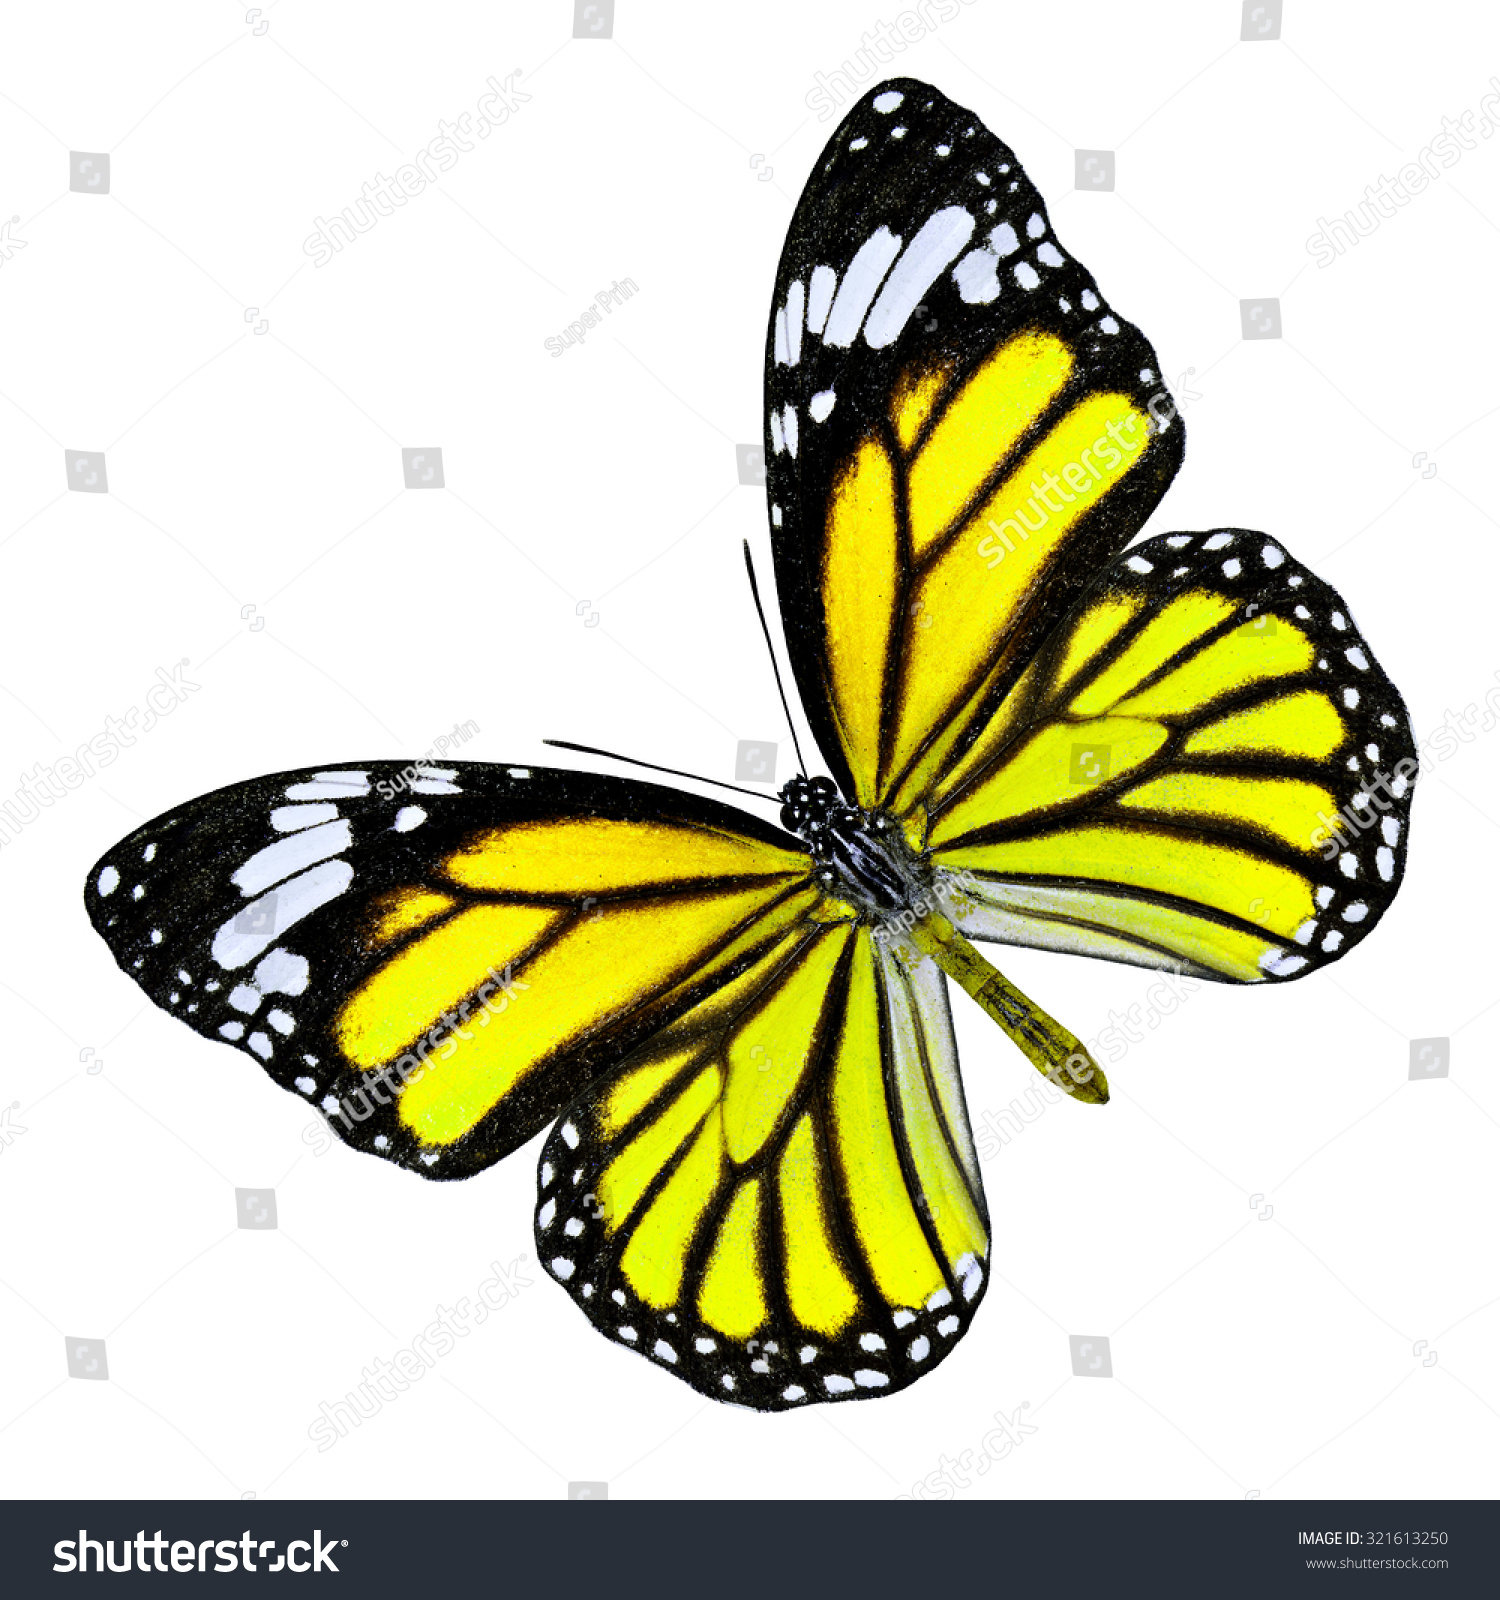 butterfly on yellow color - photo #4